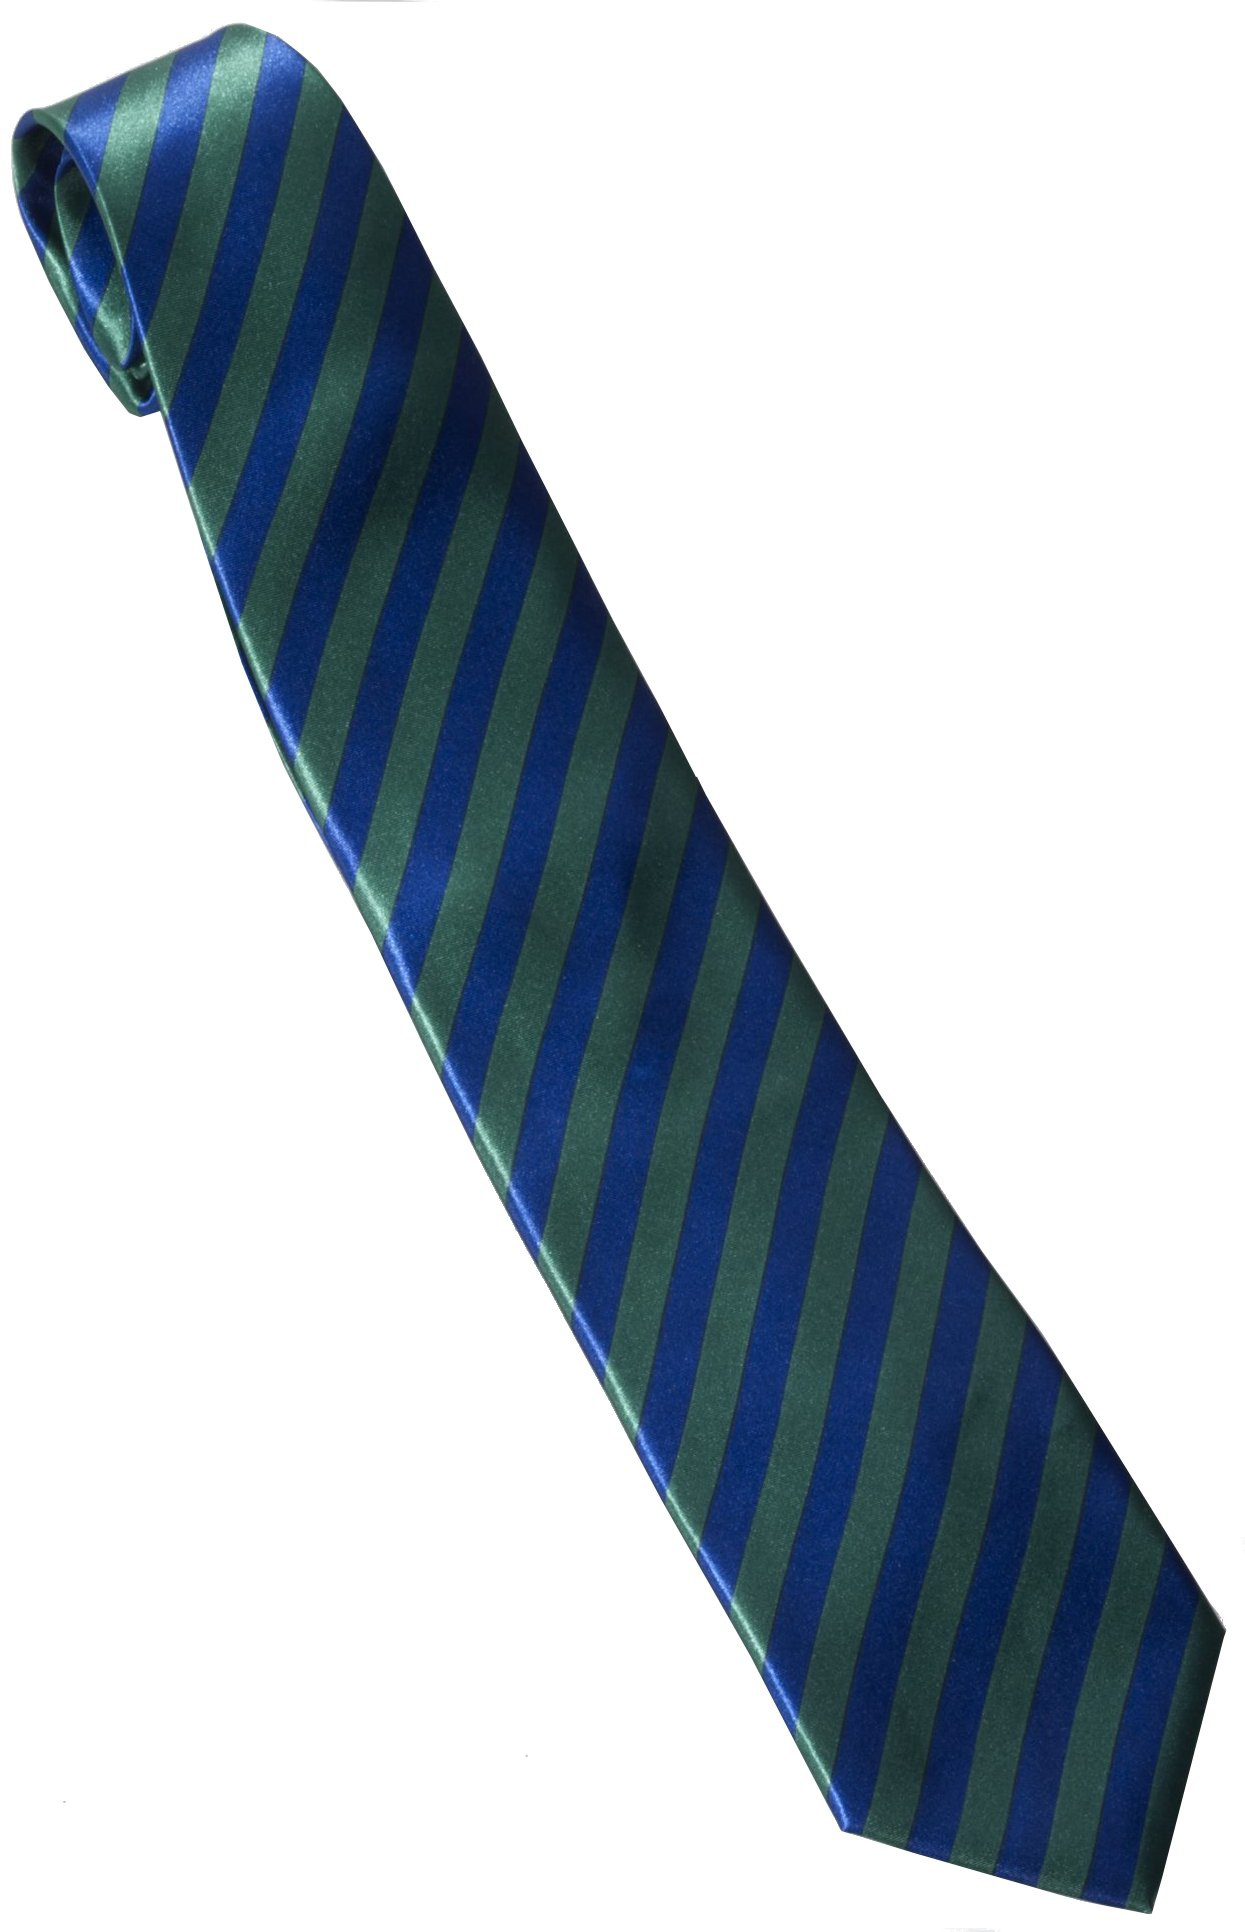 Roaring 20s Green and Blue Striped Tie